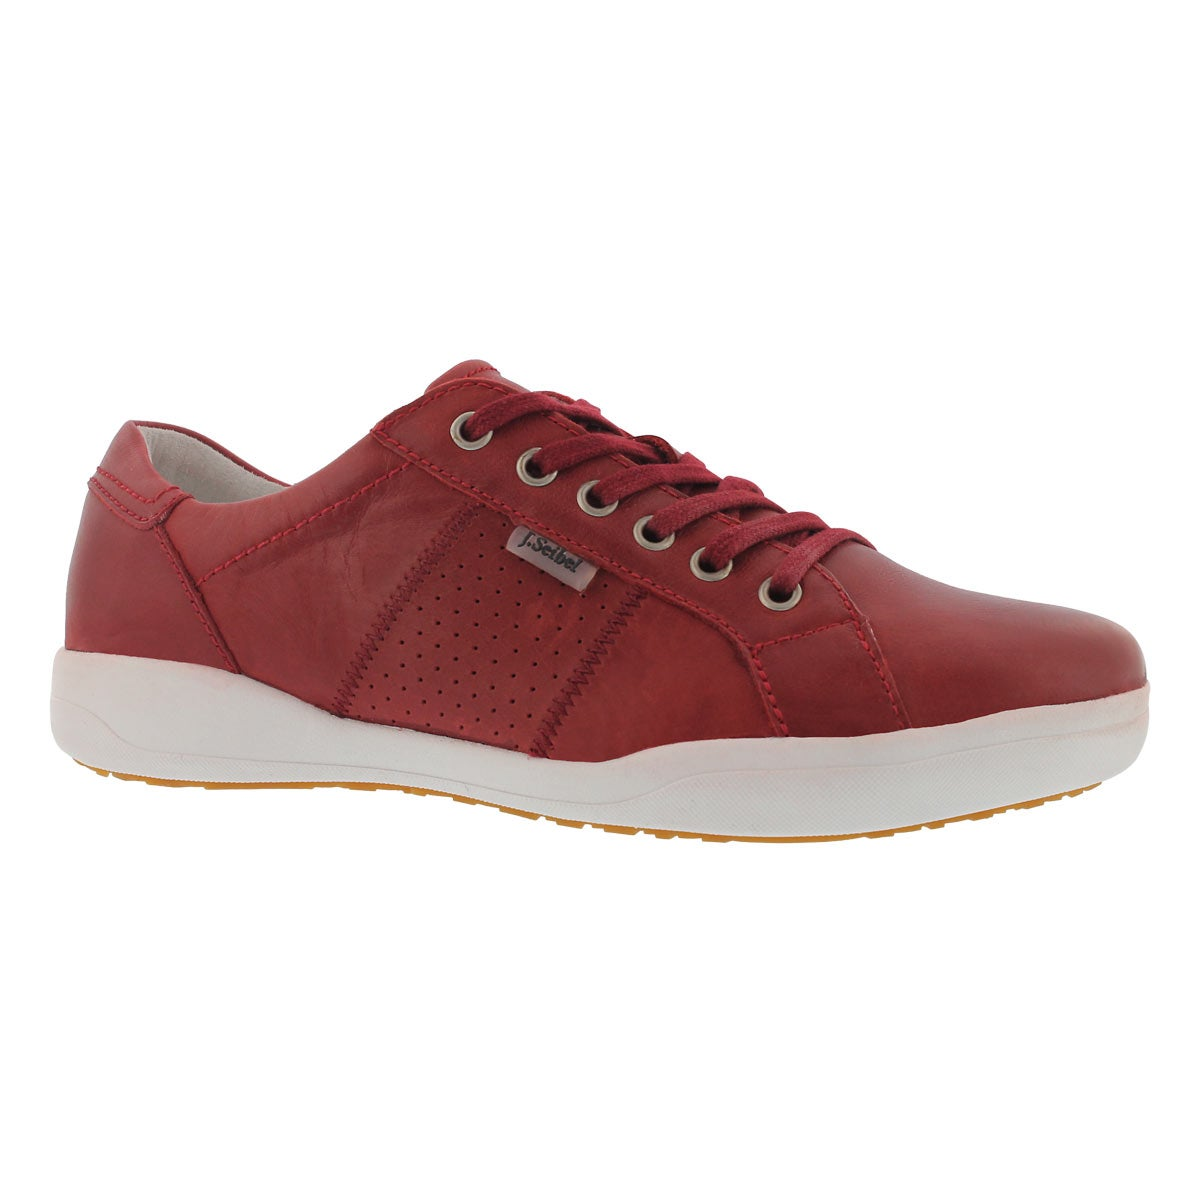 Women's SINA 41 rot lace up casual sneakers